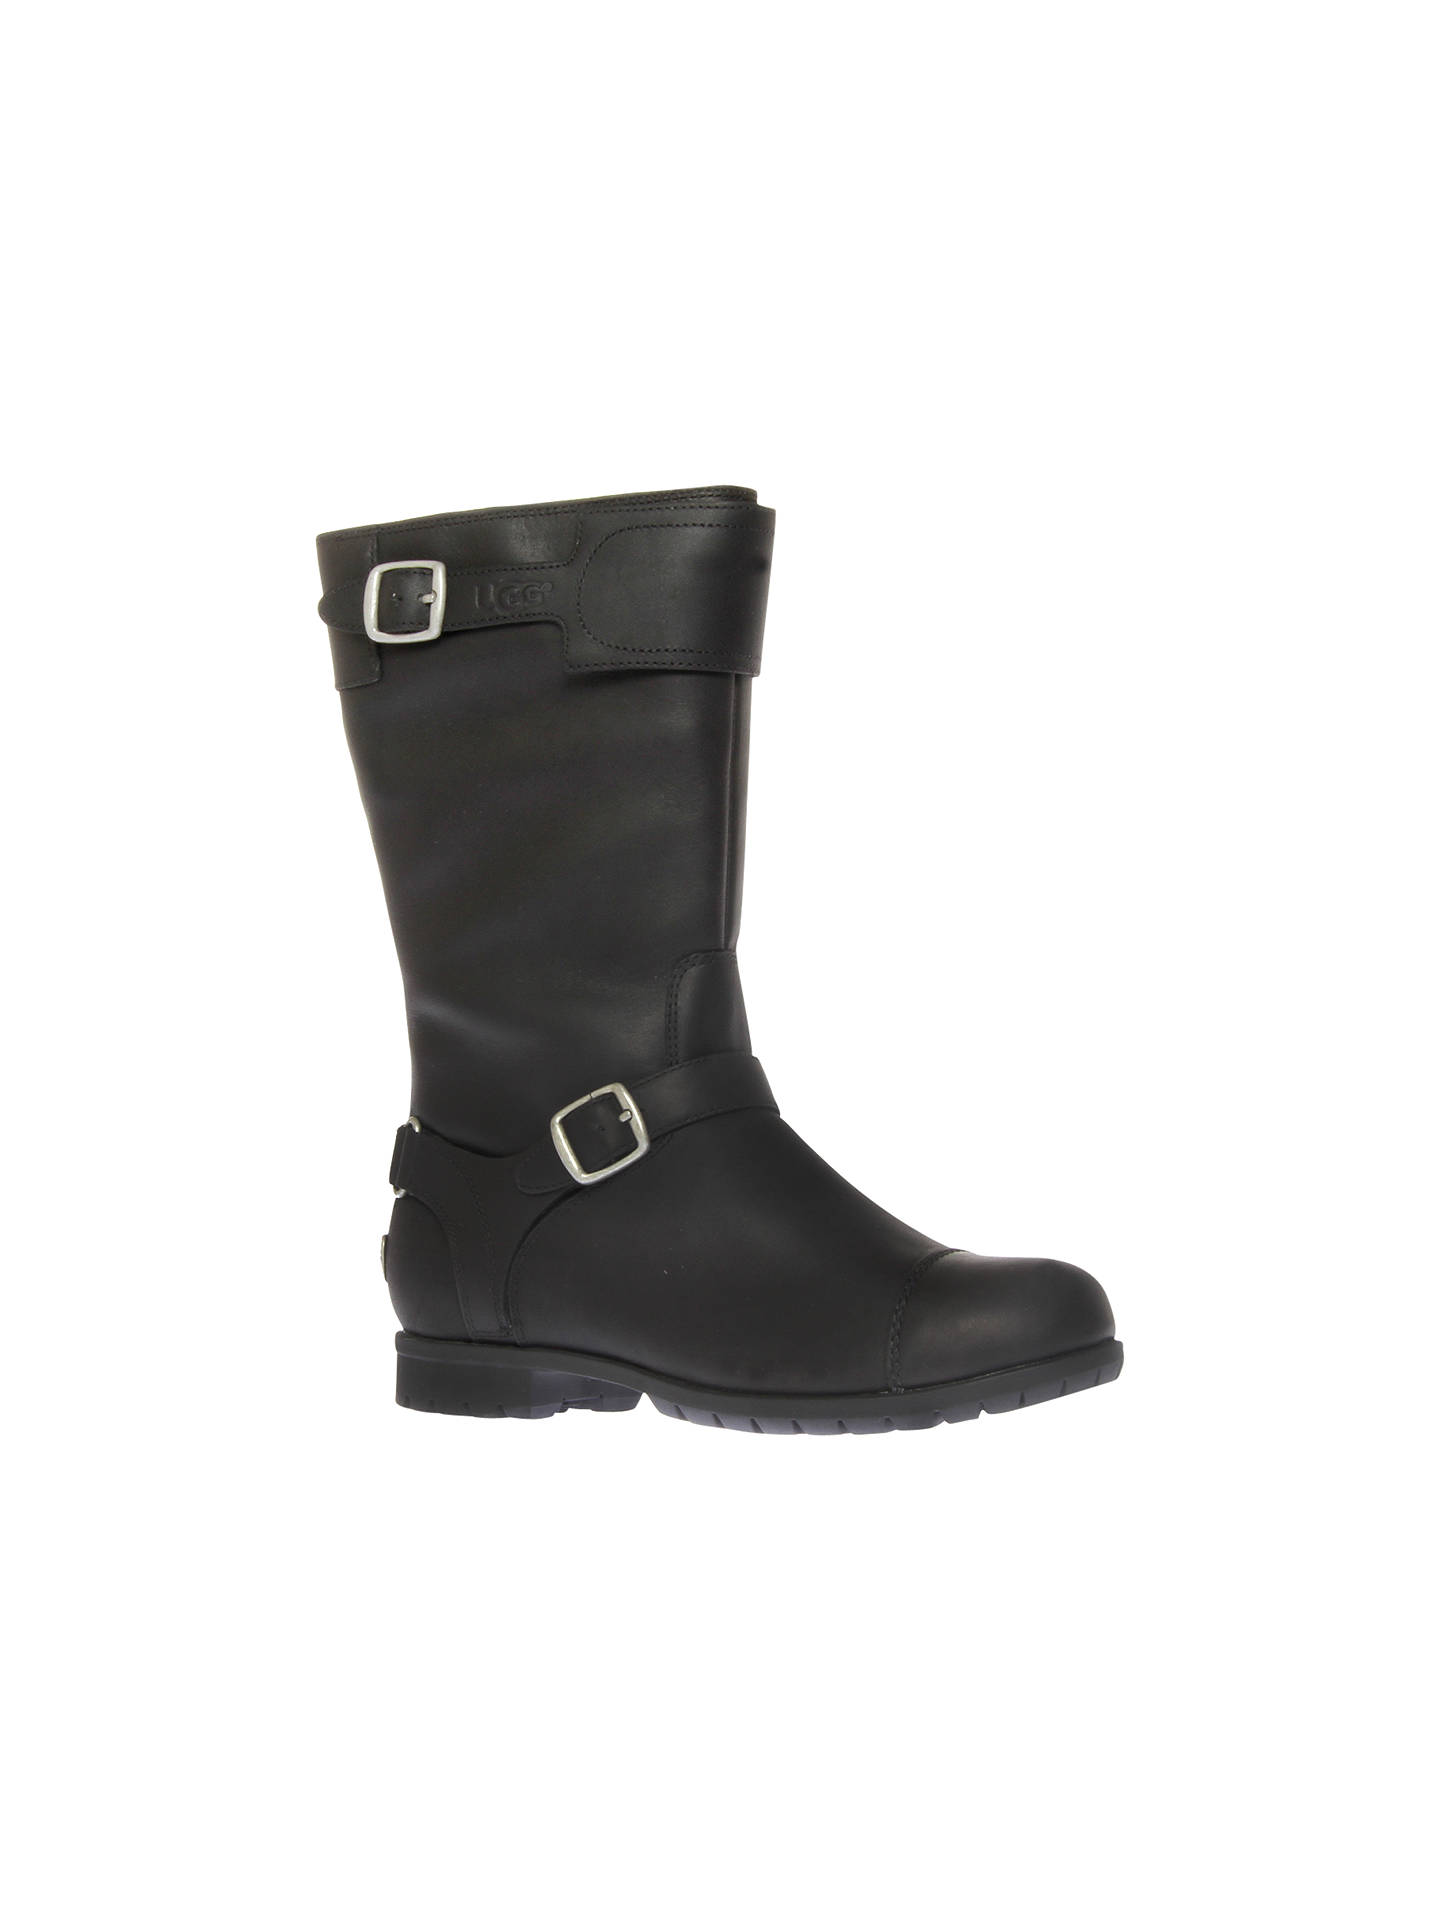 197ba5989f2 UGG Gershwin Leather Buckled Boots, Black at John Lewis & Partners